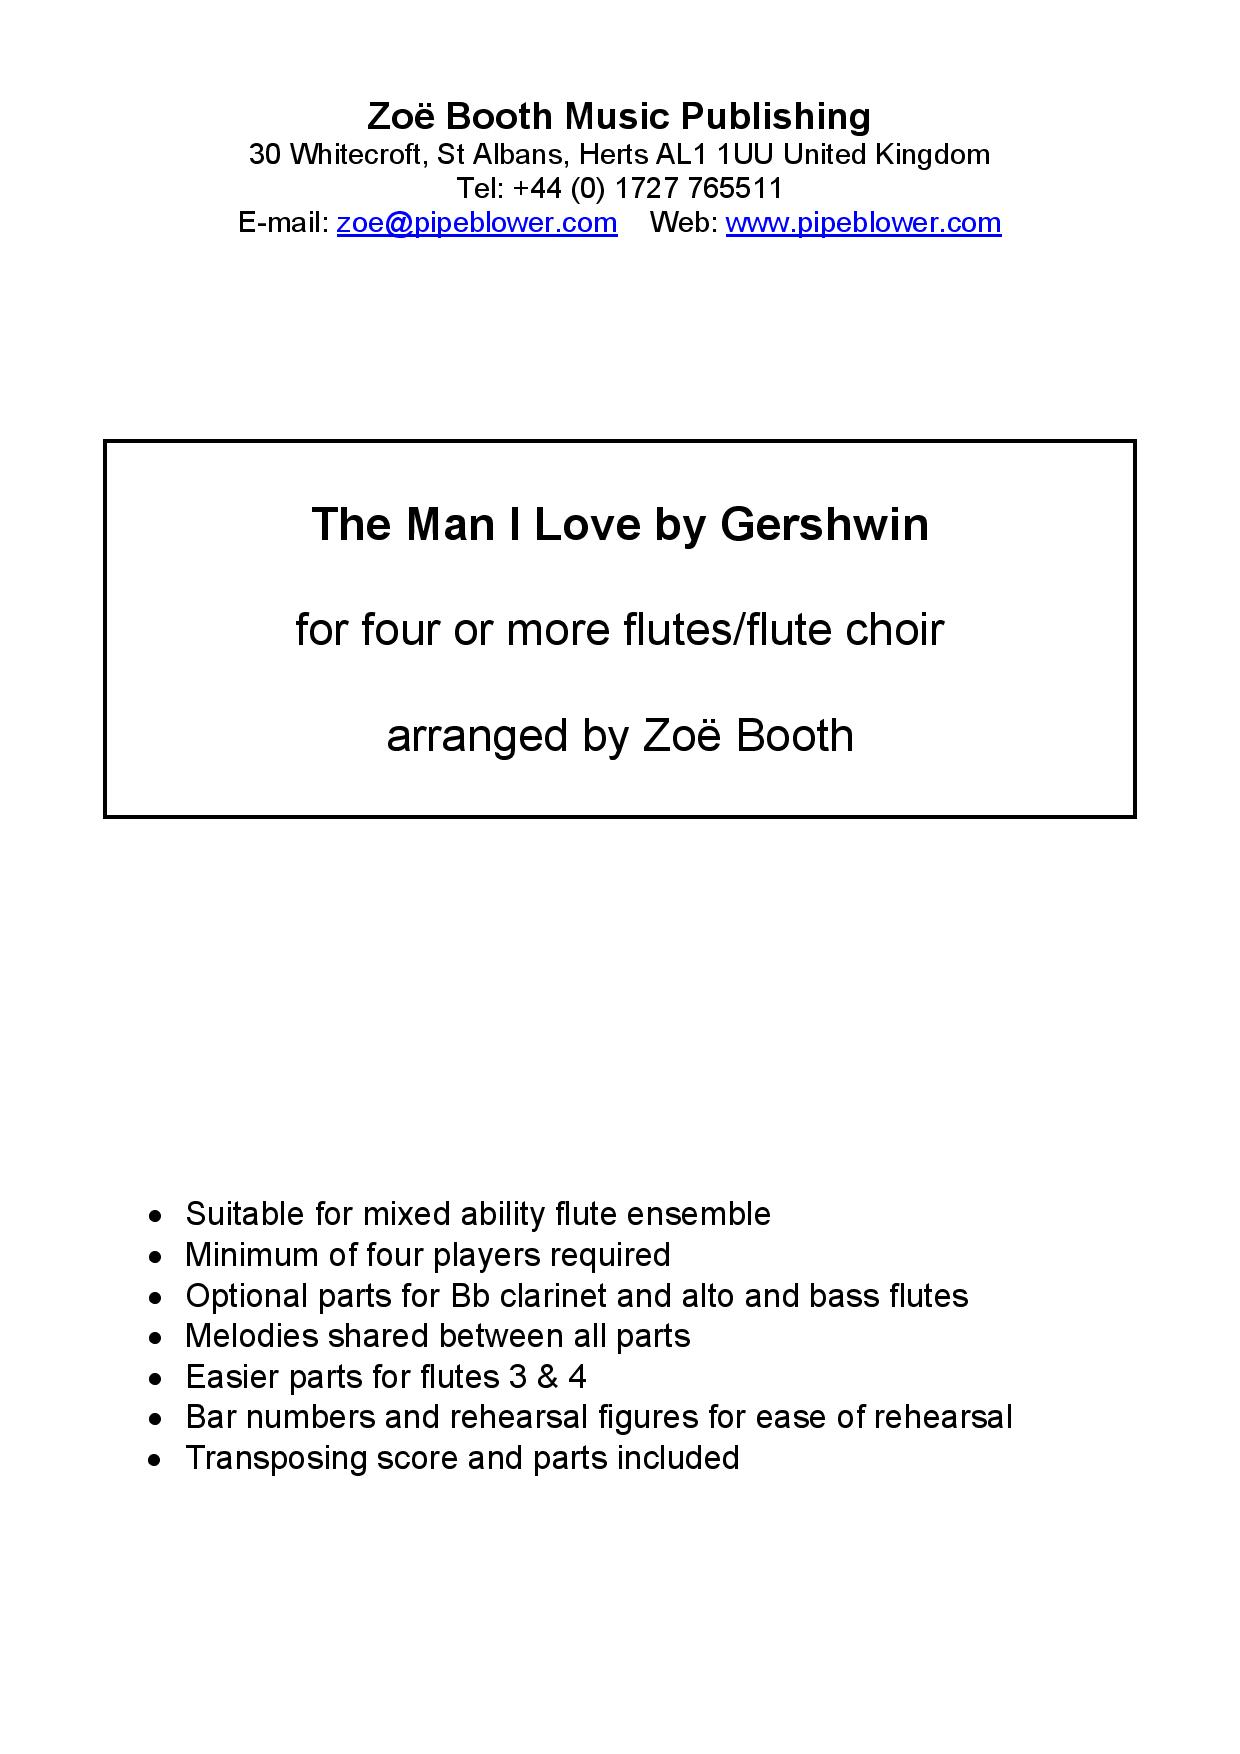 The Man I Love by Gershwin,  arranged by Zoë Booth for four or more flutes/flute choir